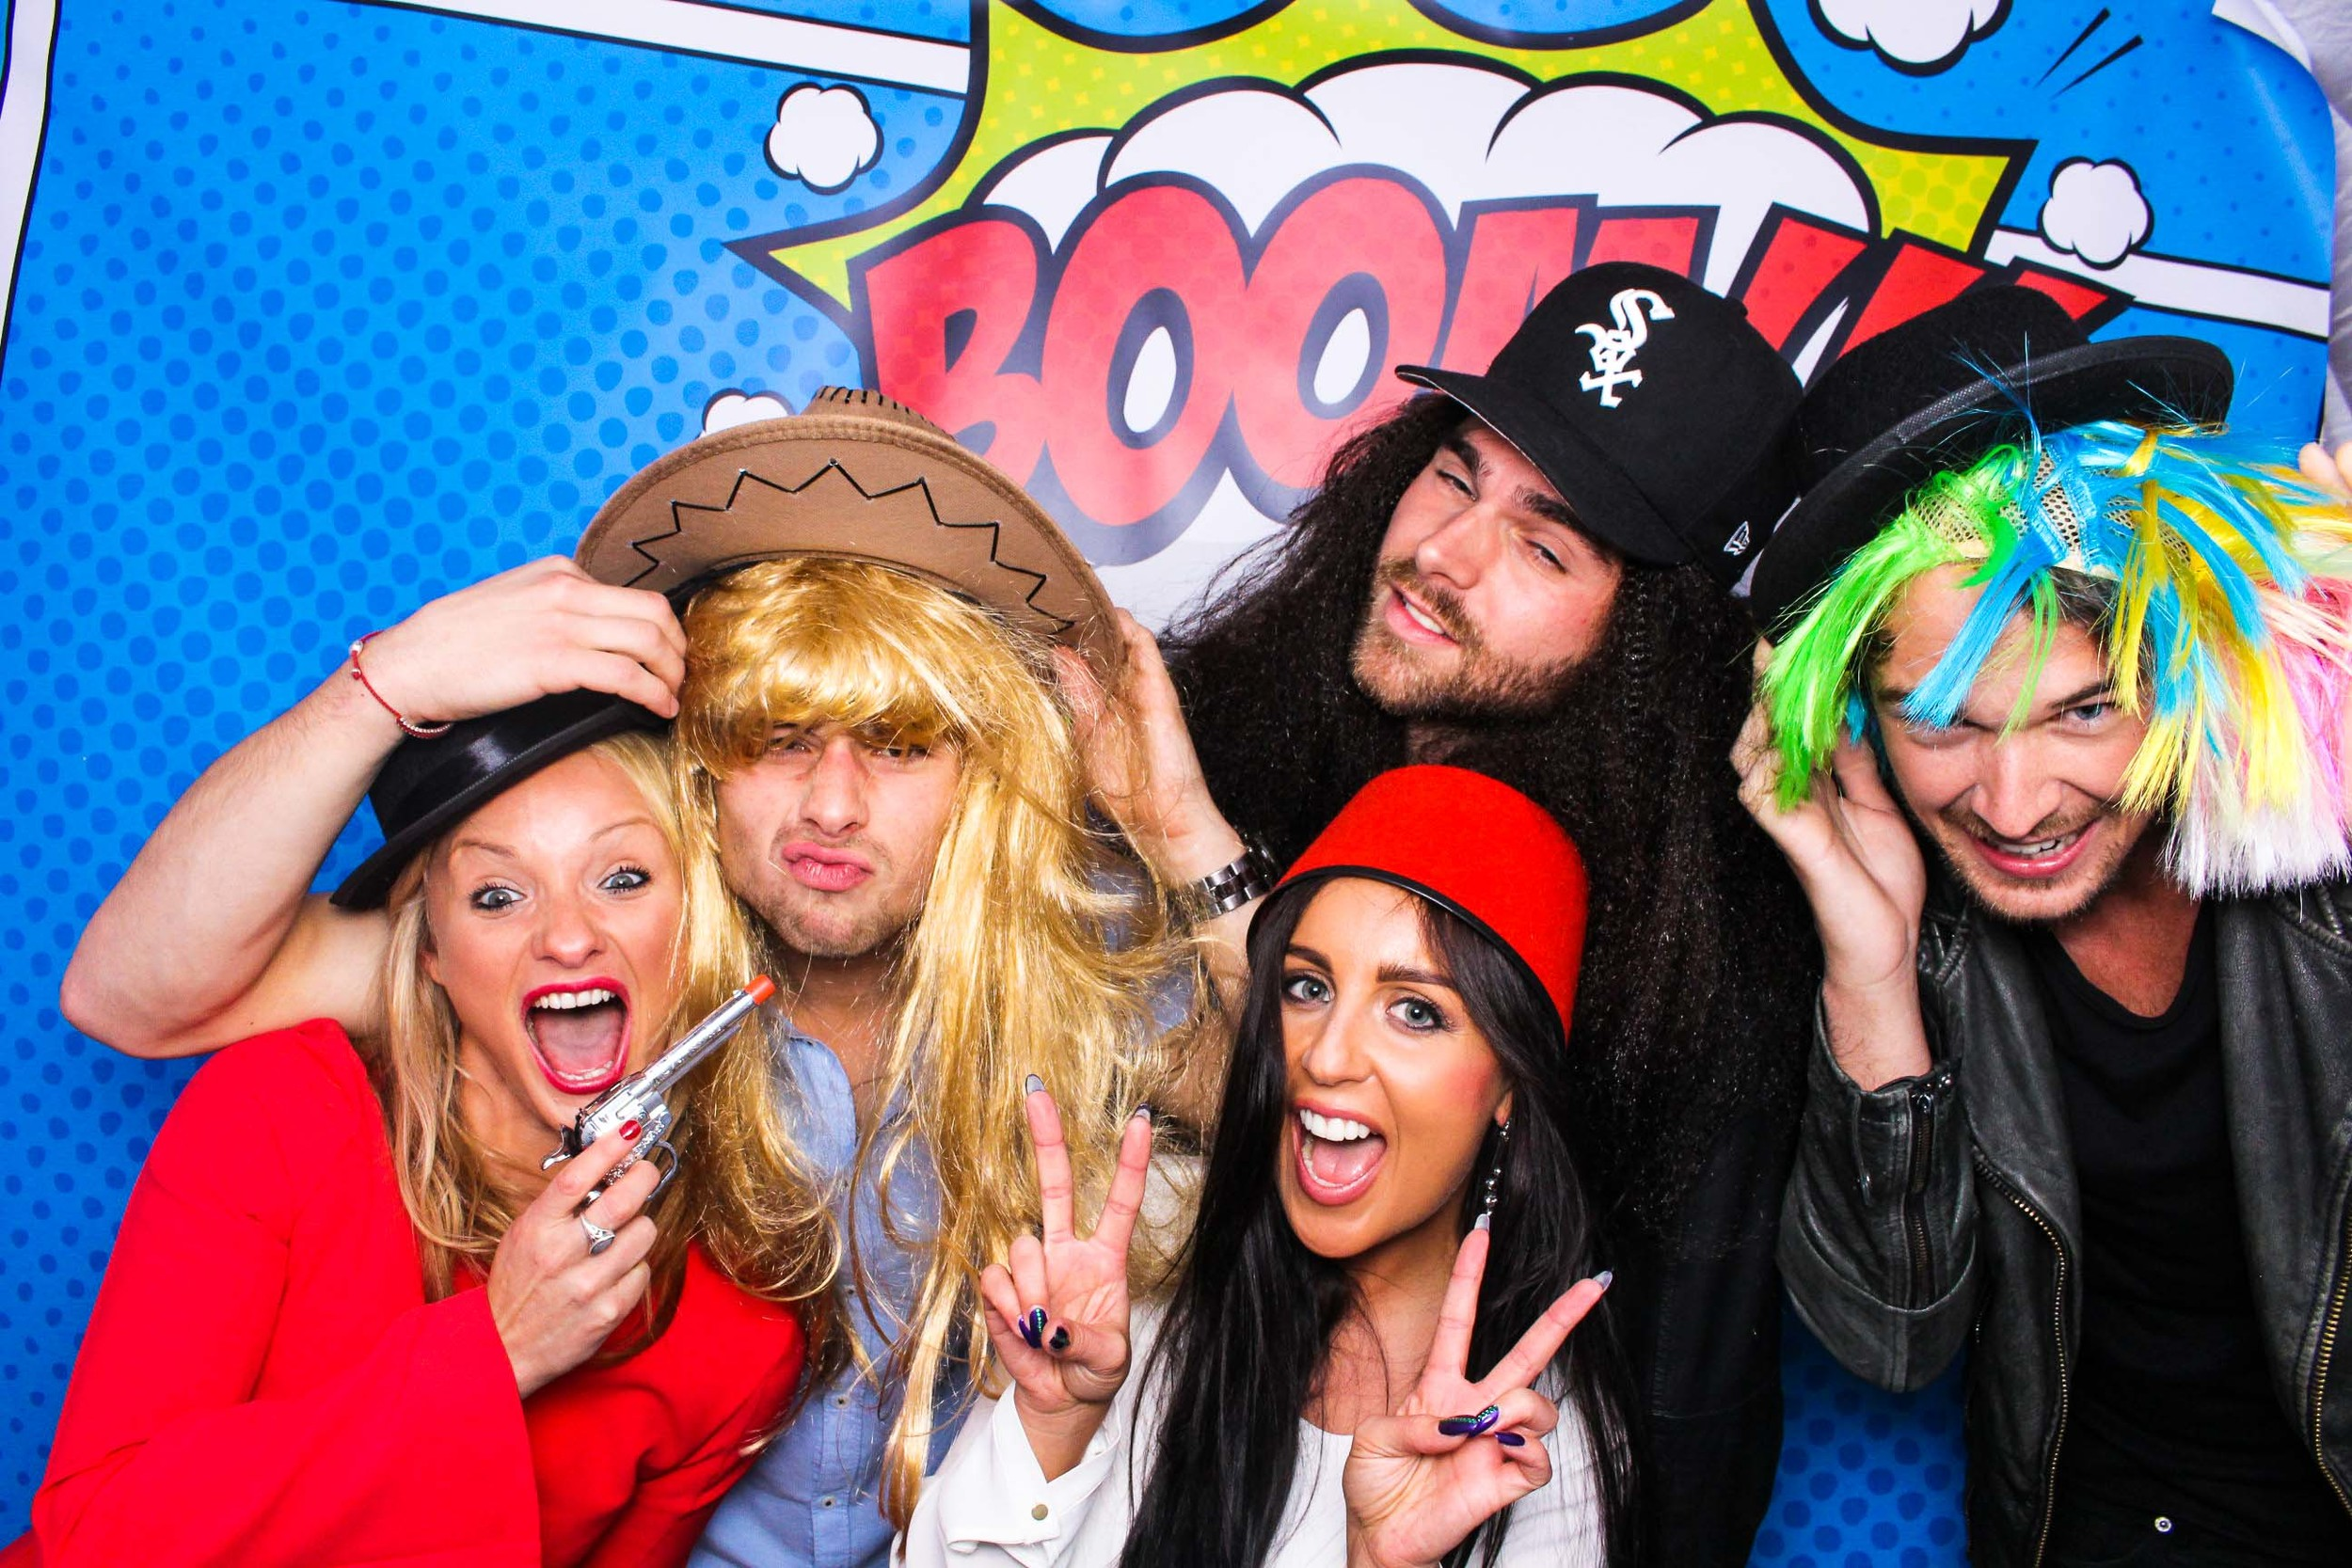 Fotoauto Photo Booth Hire - Shop Direct-55.jpg